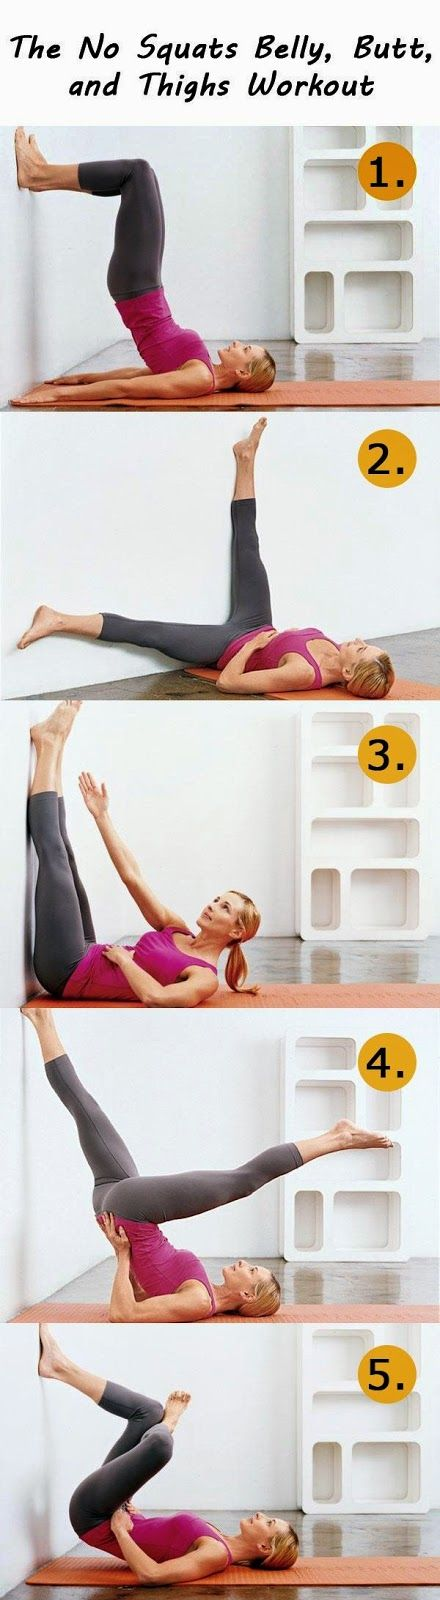 Time to Get Fit!: No Squat Exercises To Flatten Belly In Just Two Weeks!